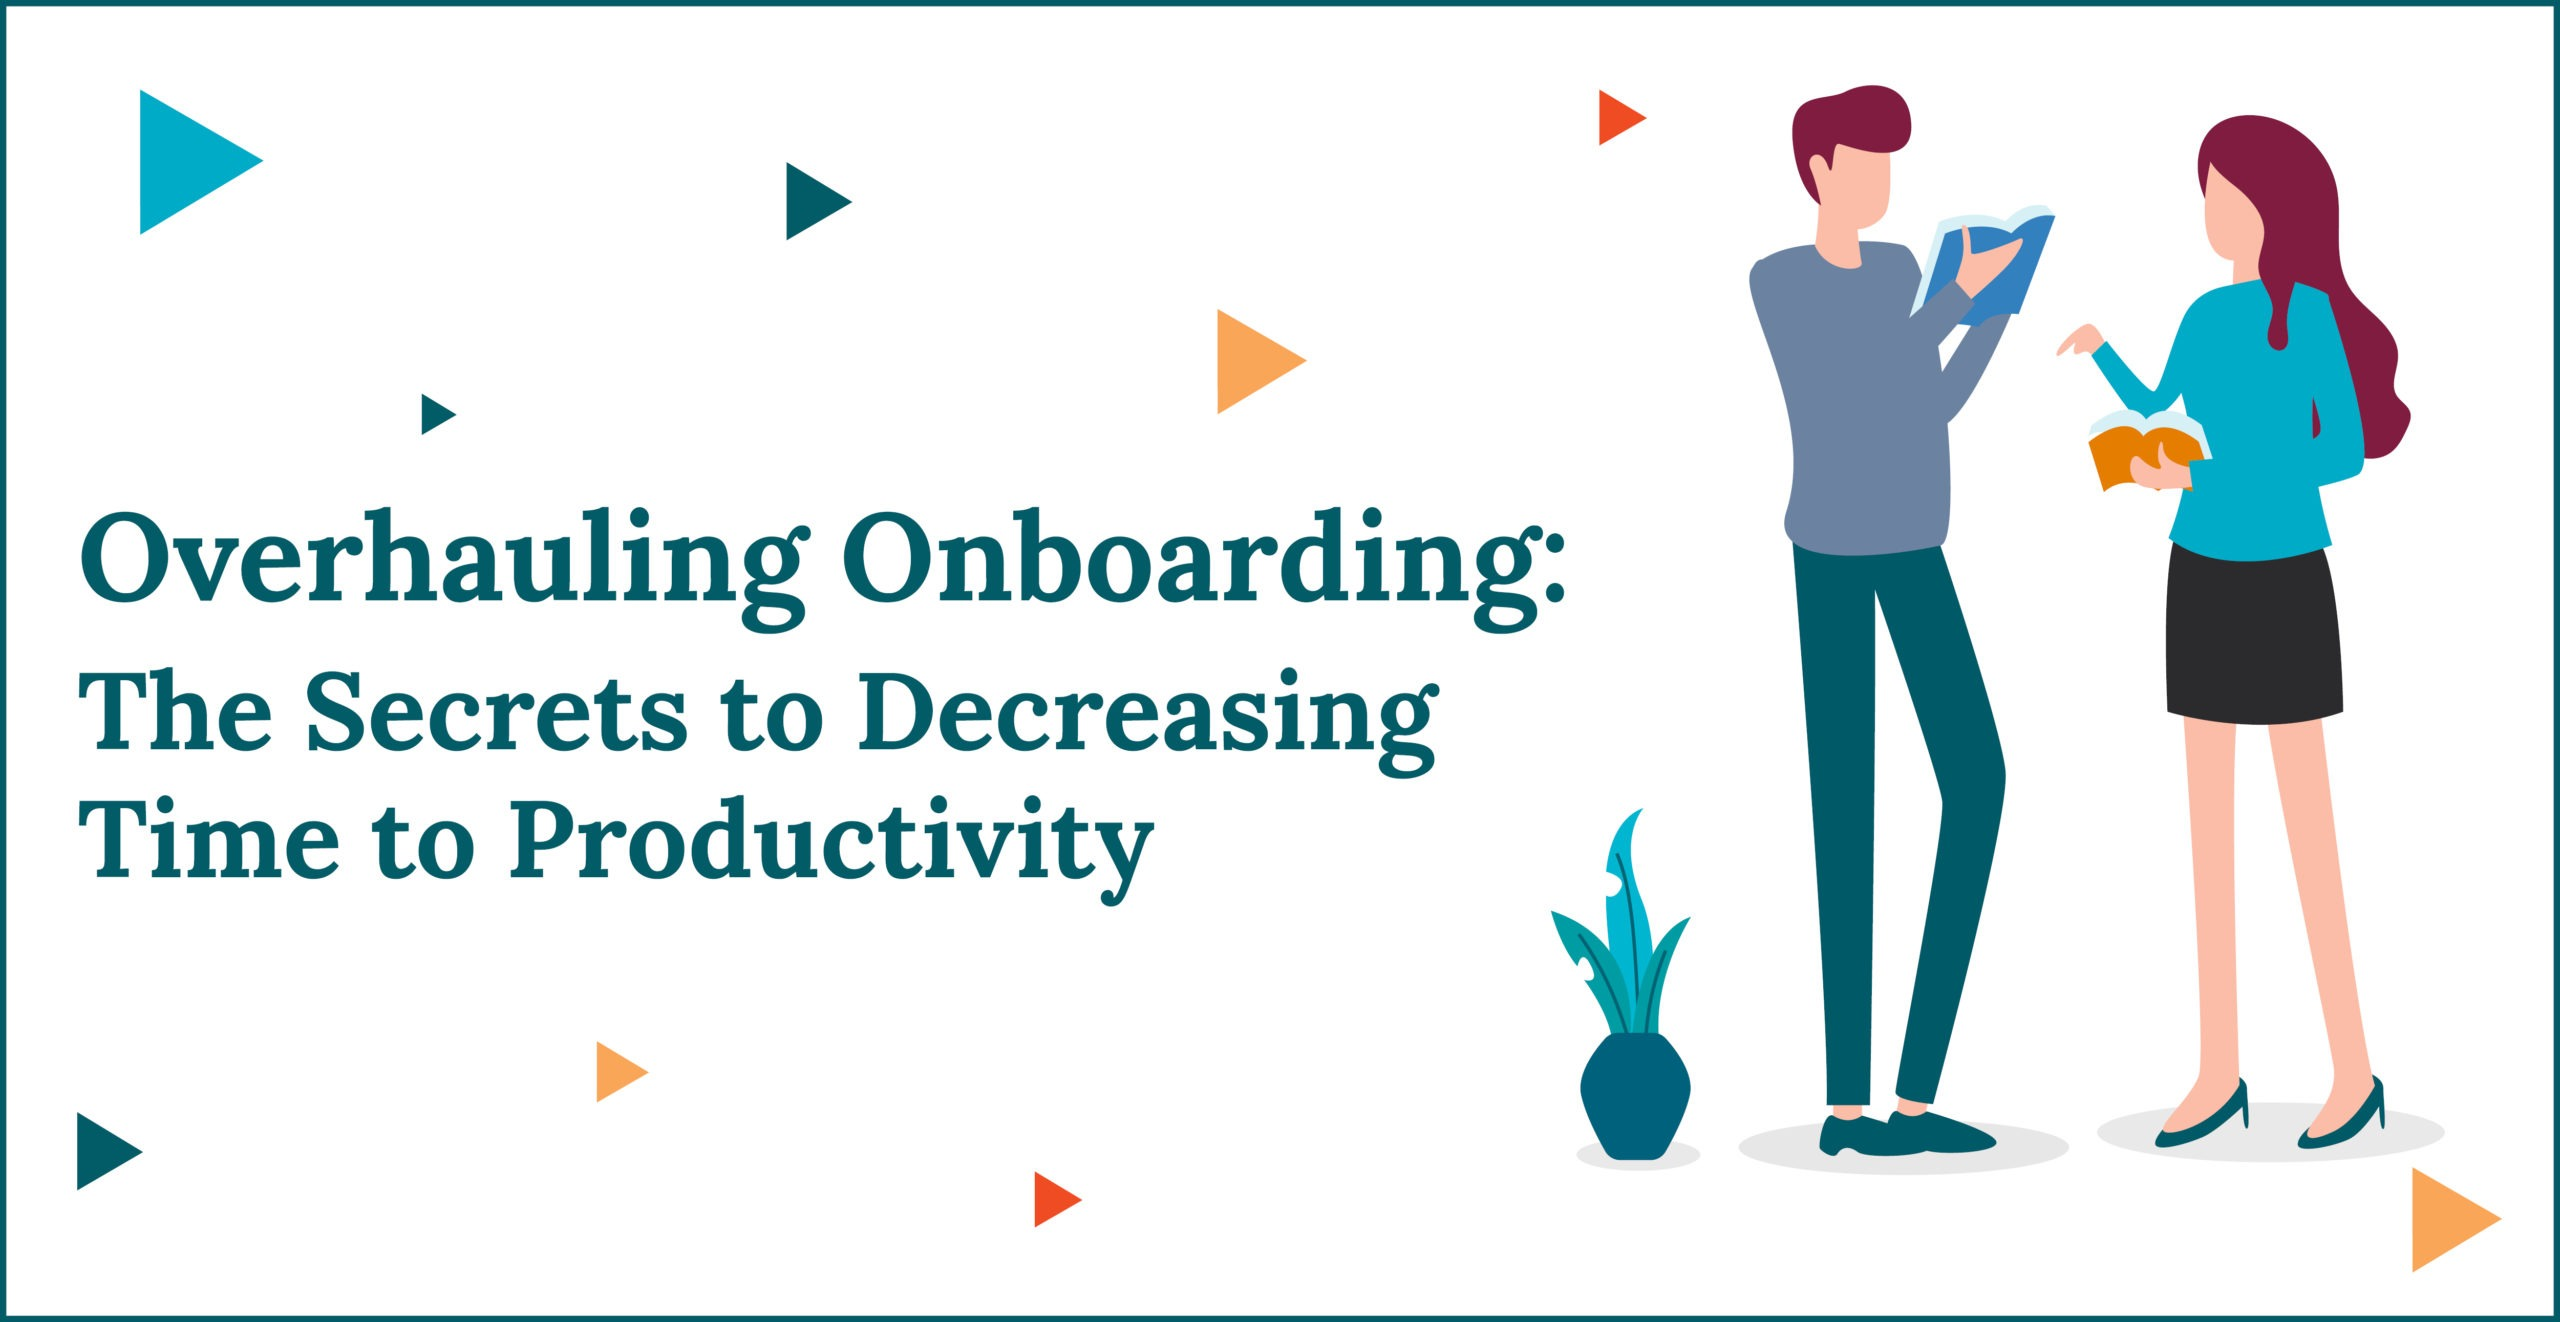 Overhauling Onboarding: The Secrets to Decreasing Time to Productivity